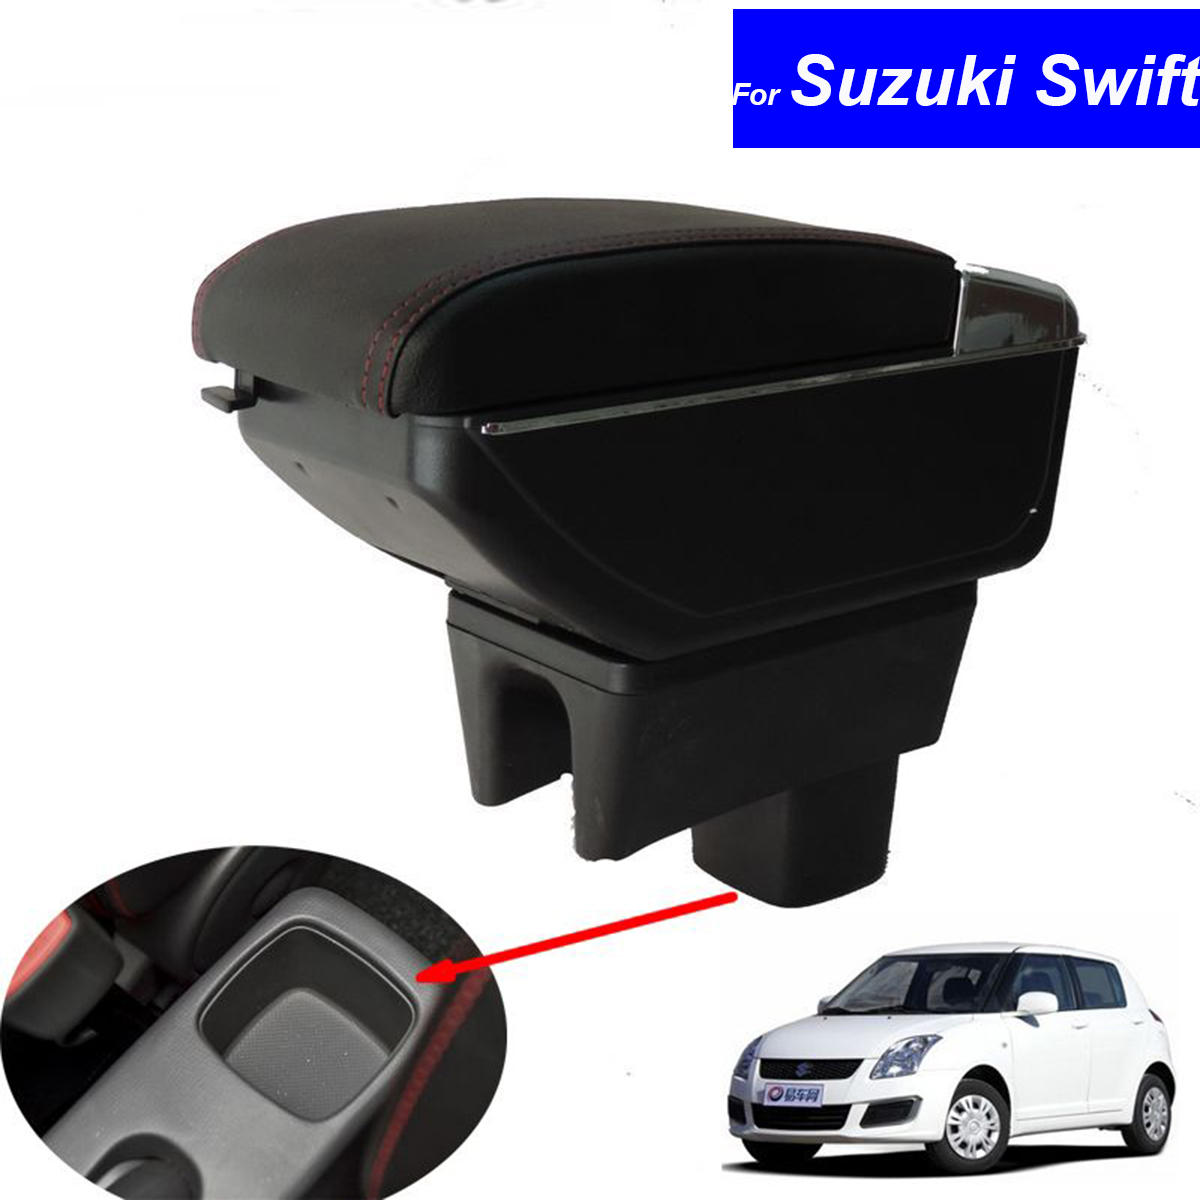 Leather Car Center Console Armrest Box for Suzuki Swift 2008 2009 2010 2011 2012 2013 2014 2015 2016 Auto Armrests with USB for skoda octavia 2009 2010 2011 2012 2013 2014 2015 2016 armrest with usb leather car center console armrests storage box